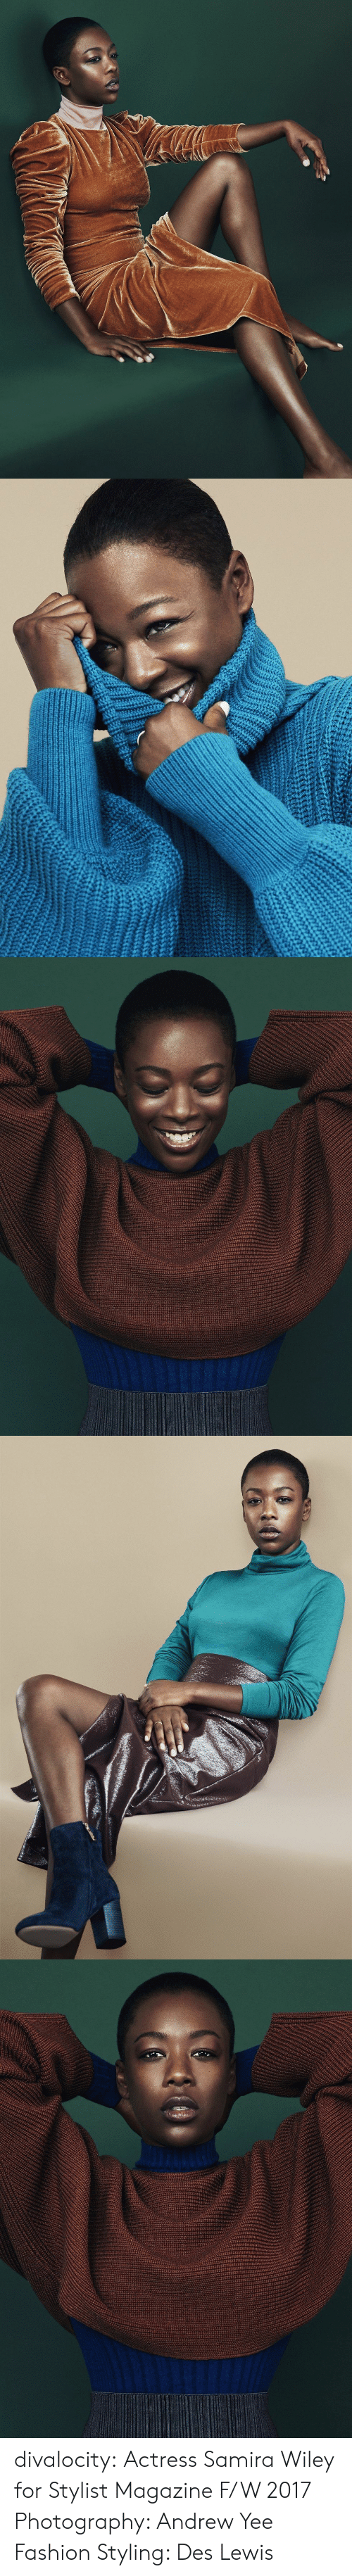 Styling: divalocity: Actress Samira Wiley for Stylist Magazine F/W 2017 Photography: Andrew Yee Fashion Styling: Des Lewis